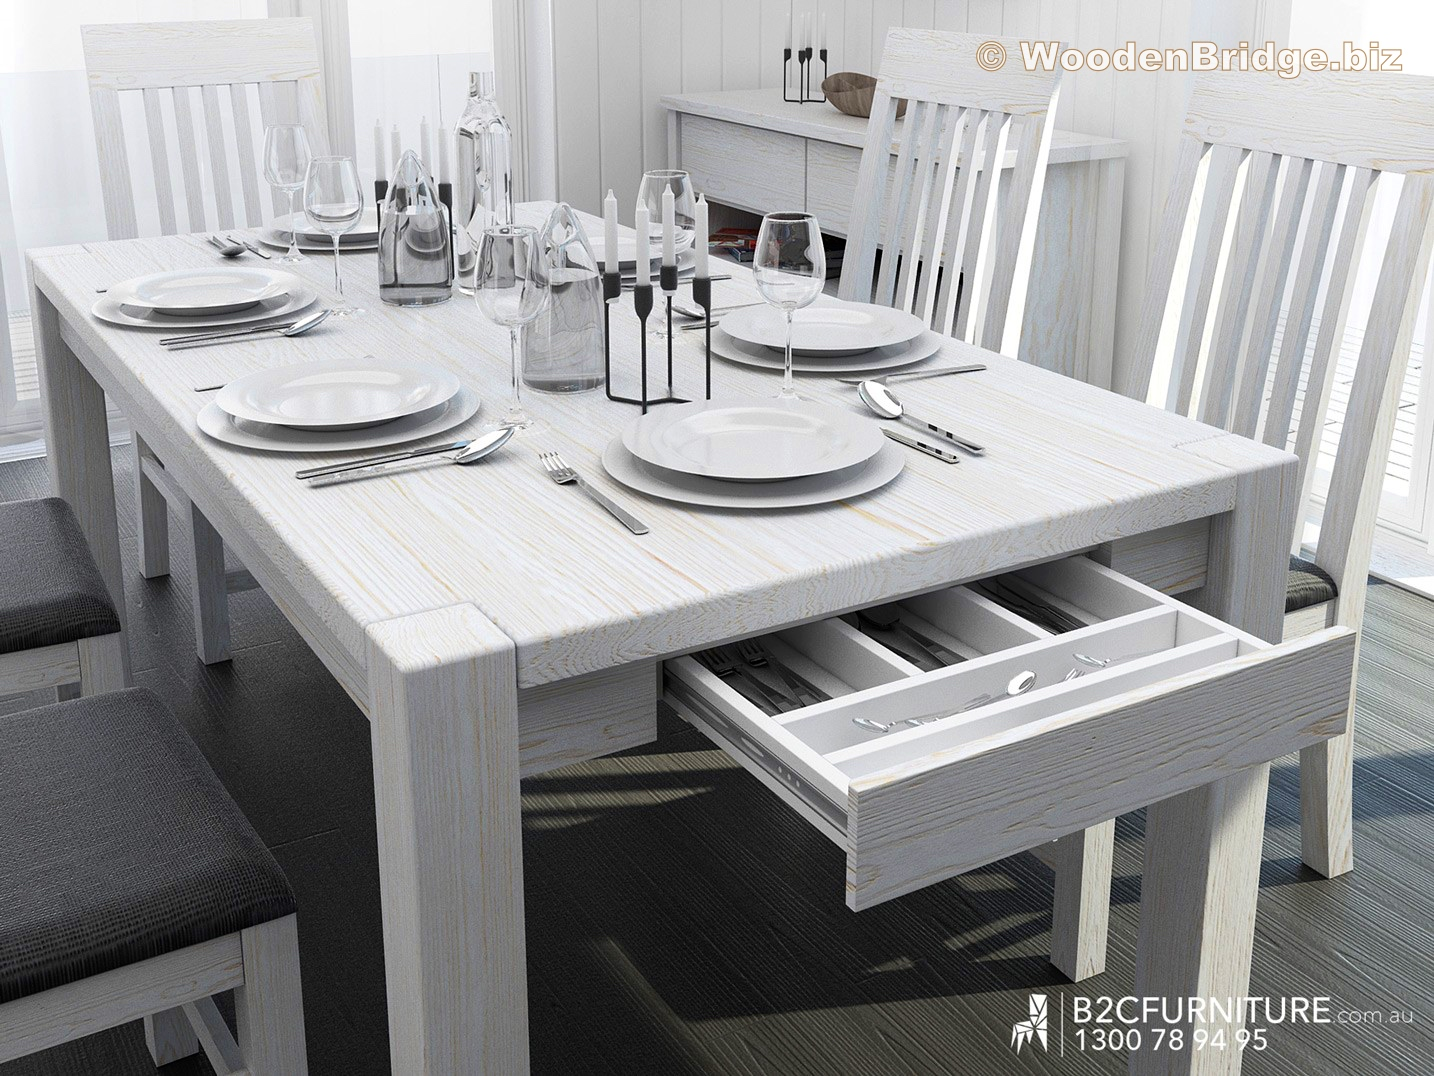 Reclaimed Wood Dining Table Ideas – 1434 x 1076